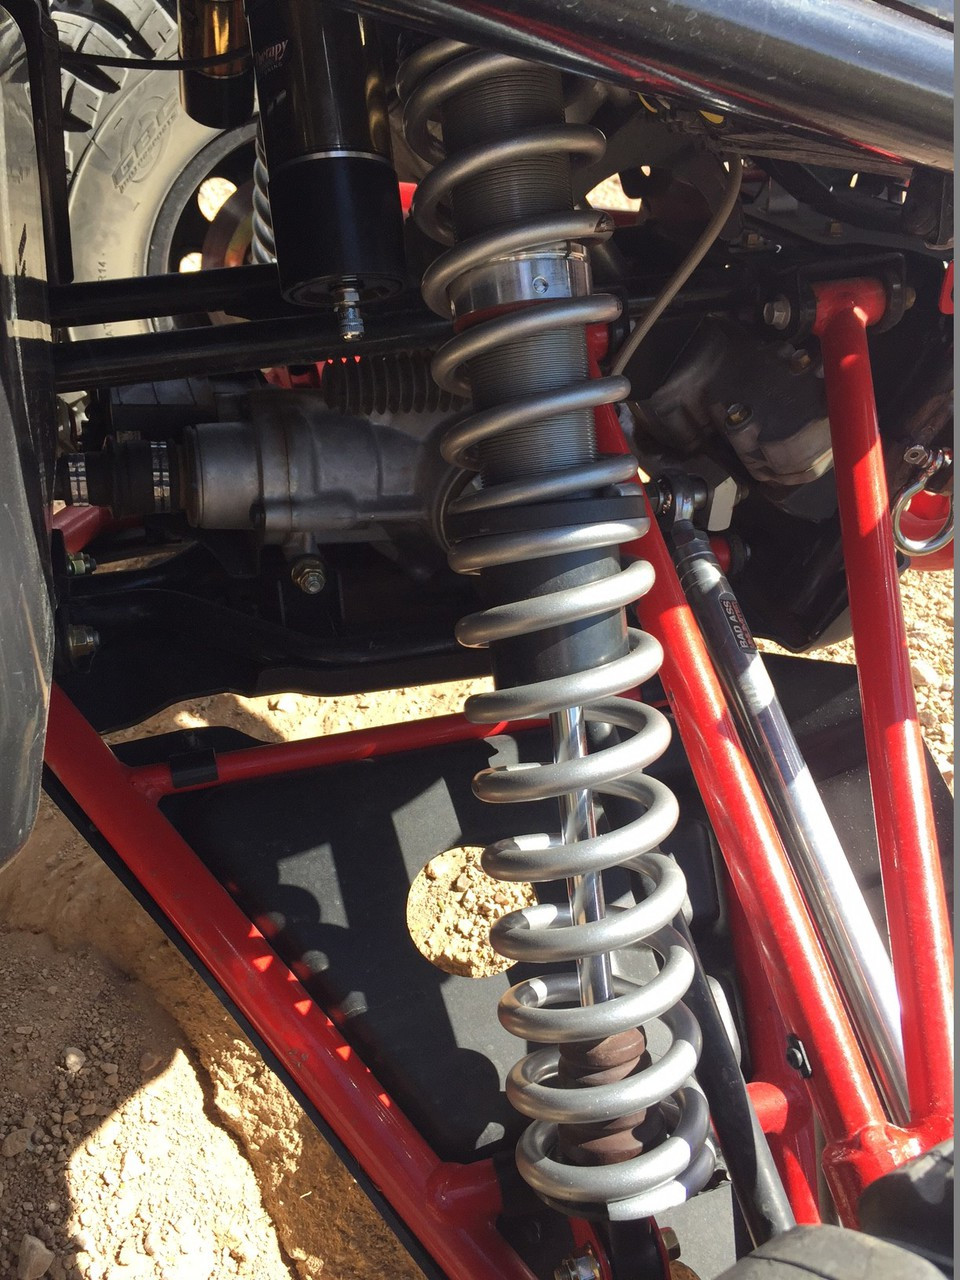 Front shock with RIS kit and full Dual Rate spring kit and Cross over rings